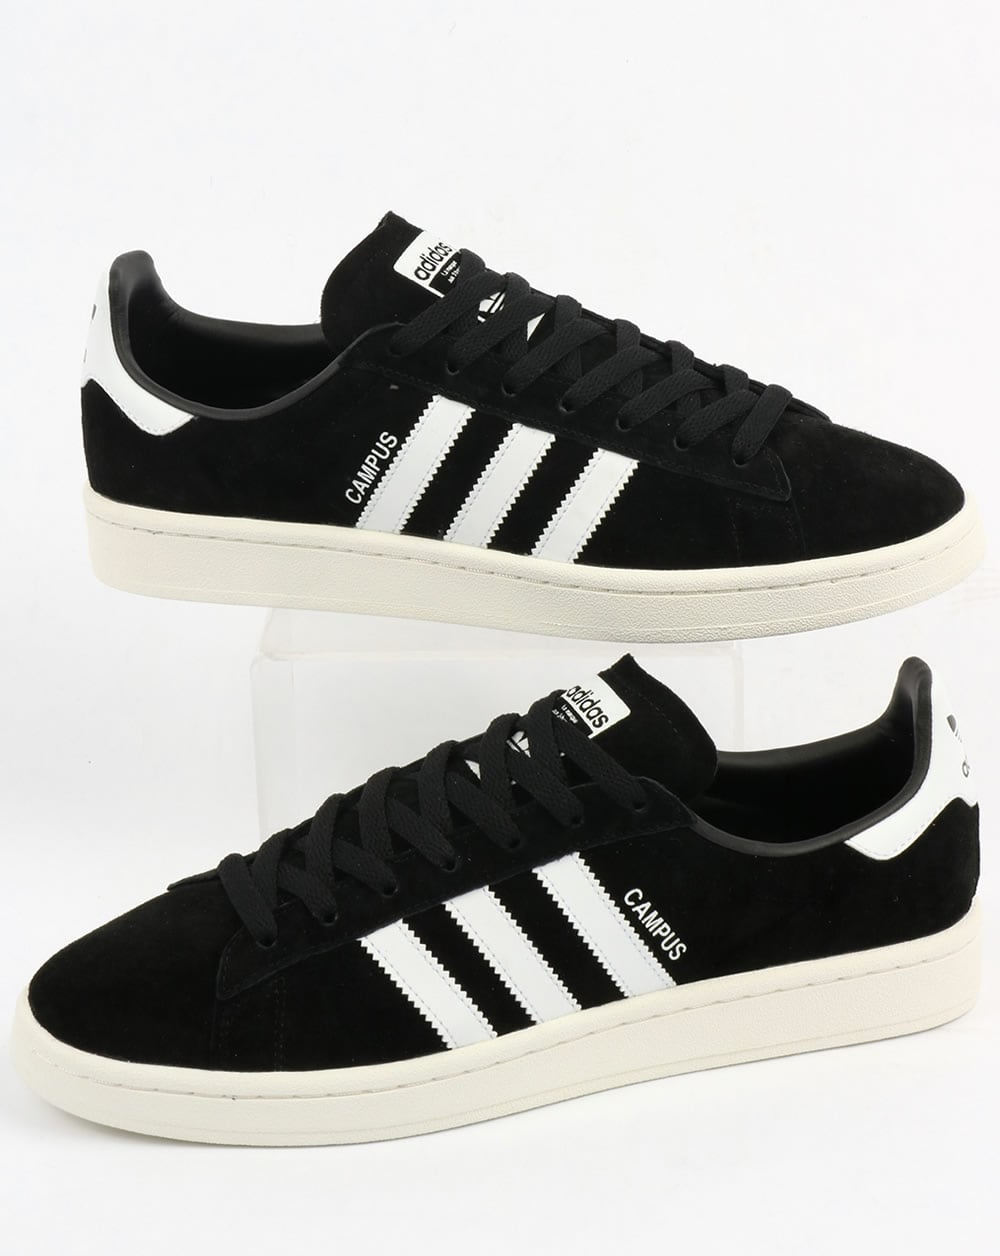 hot sale online 50c9b 8465c adidas Trainers Adidas Campus Trainers Black White